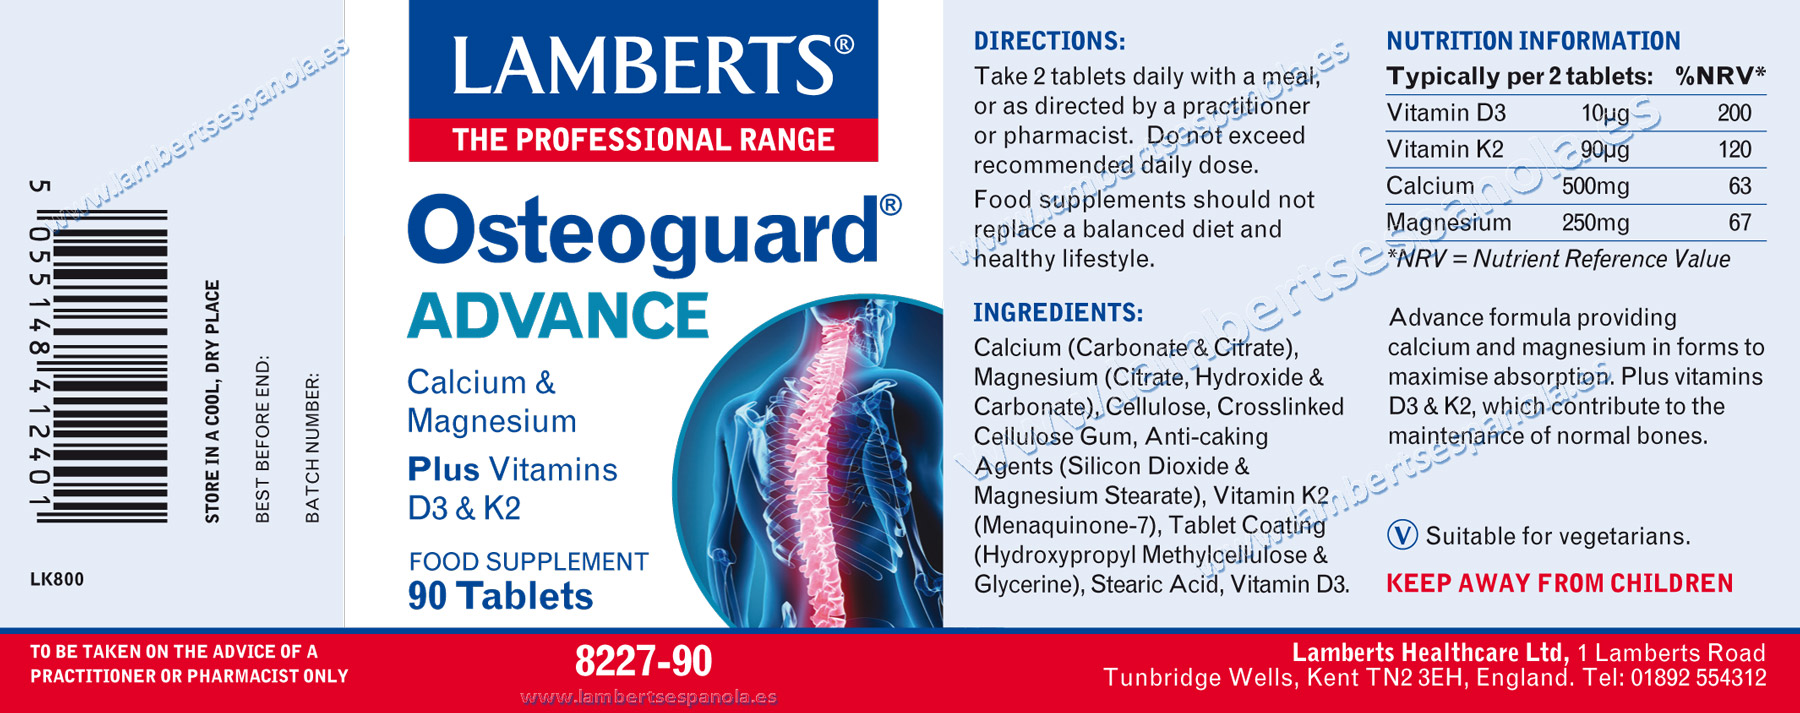 Label of Lamberts Osteoguard Advance with its properties and indications